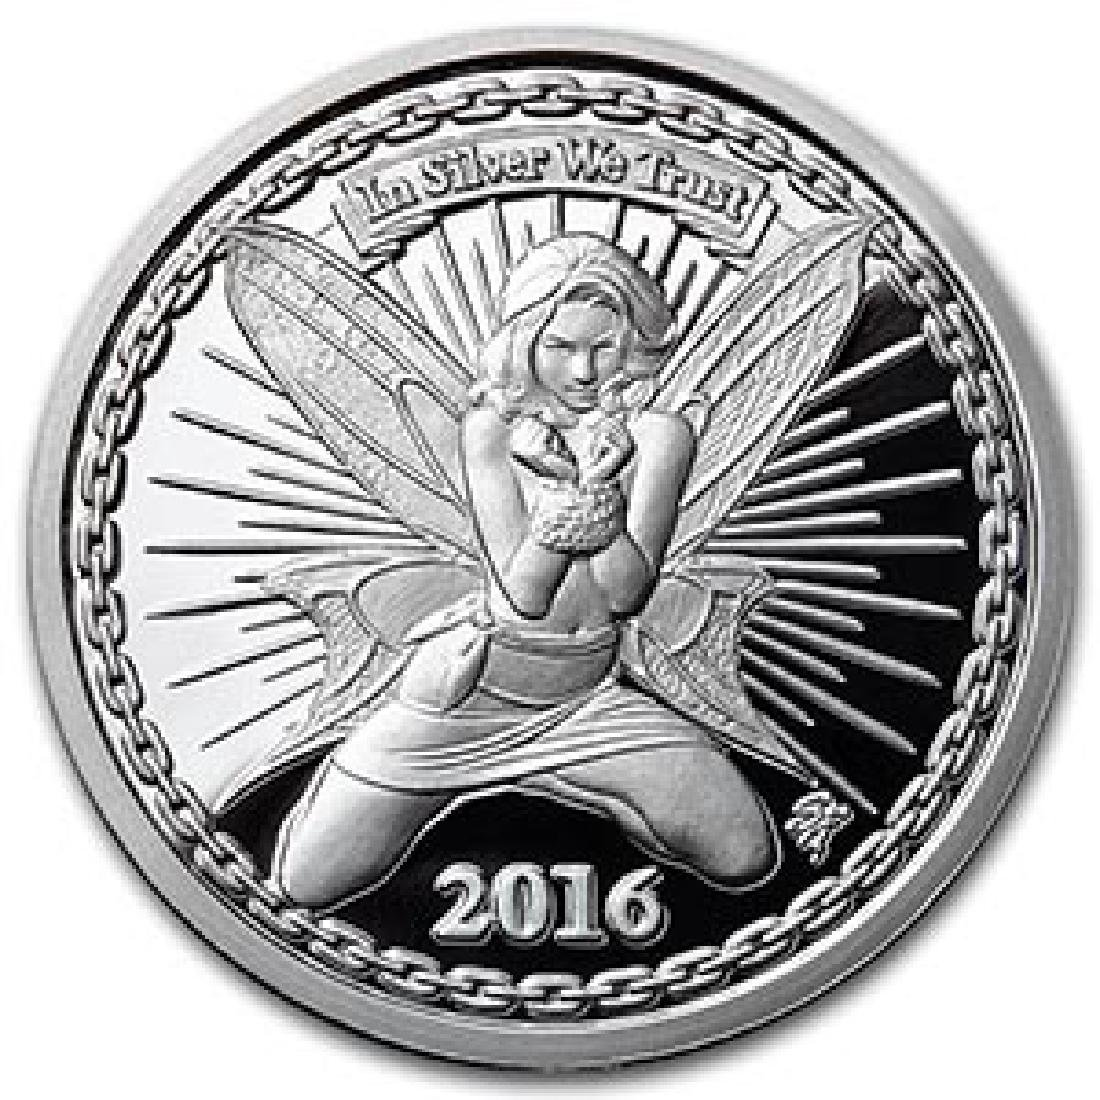 1 oz Silver Proof Round - Reddit Silverbug Alyx The Fai